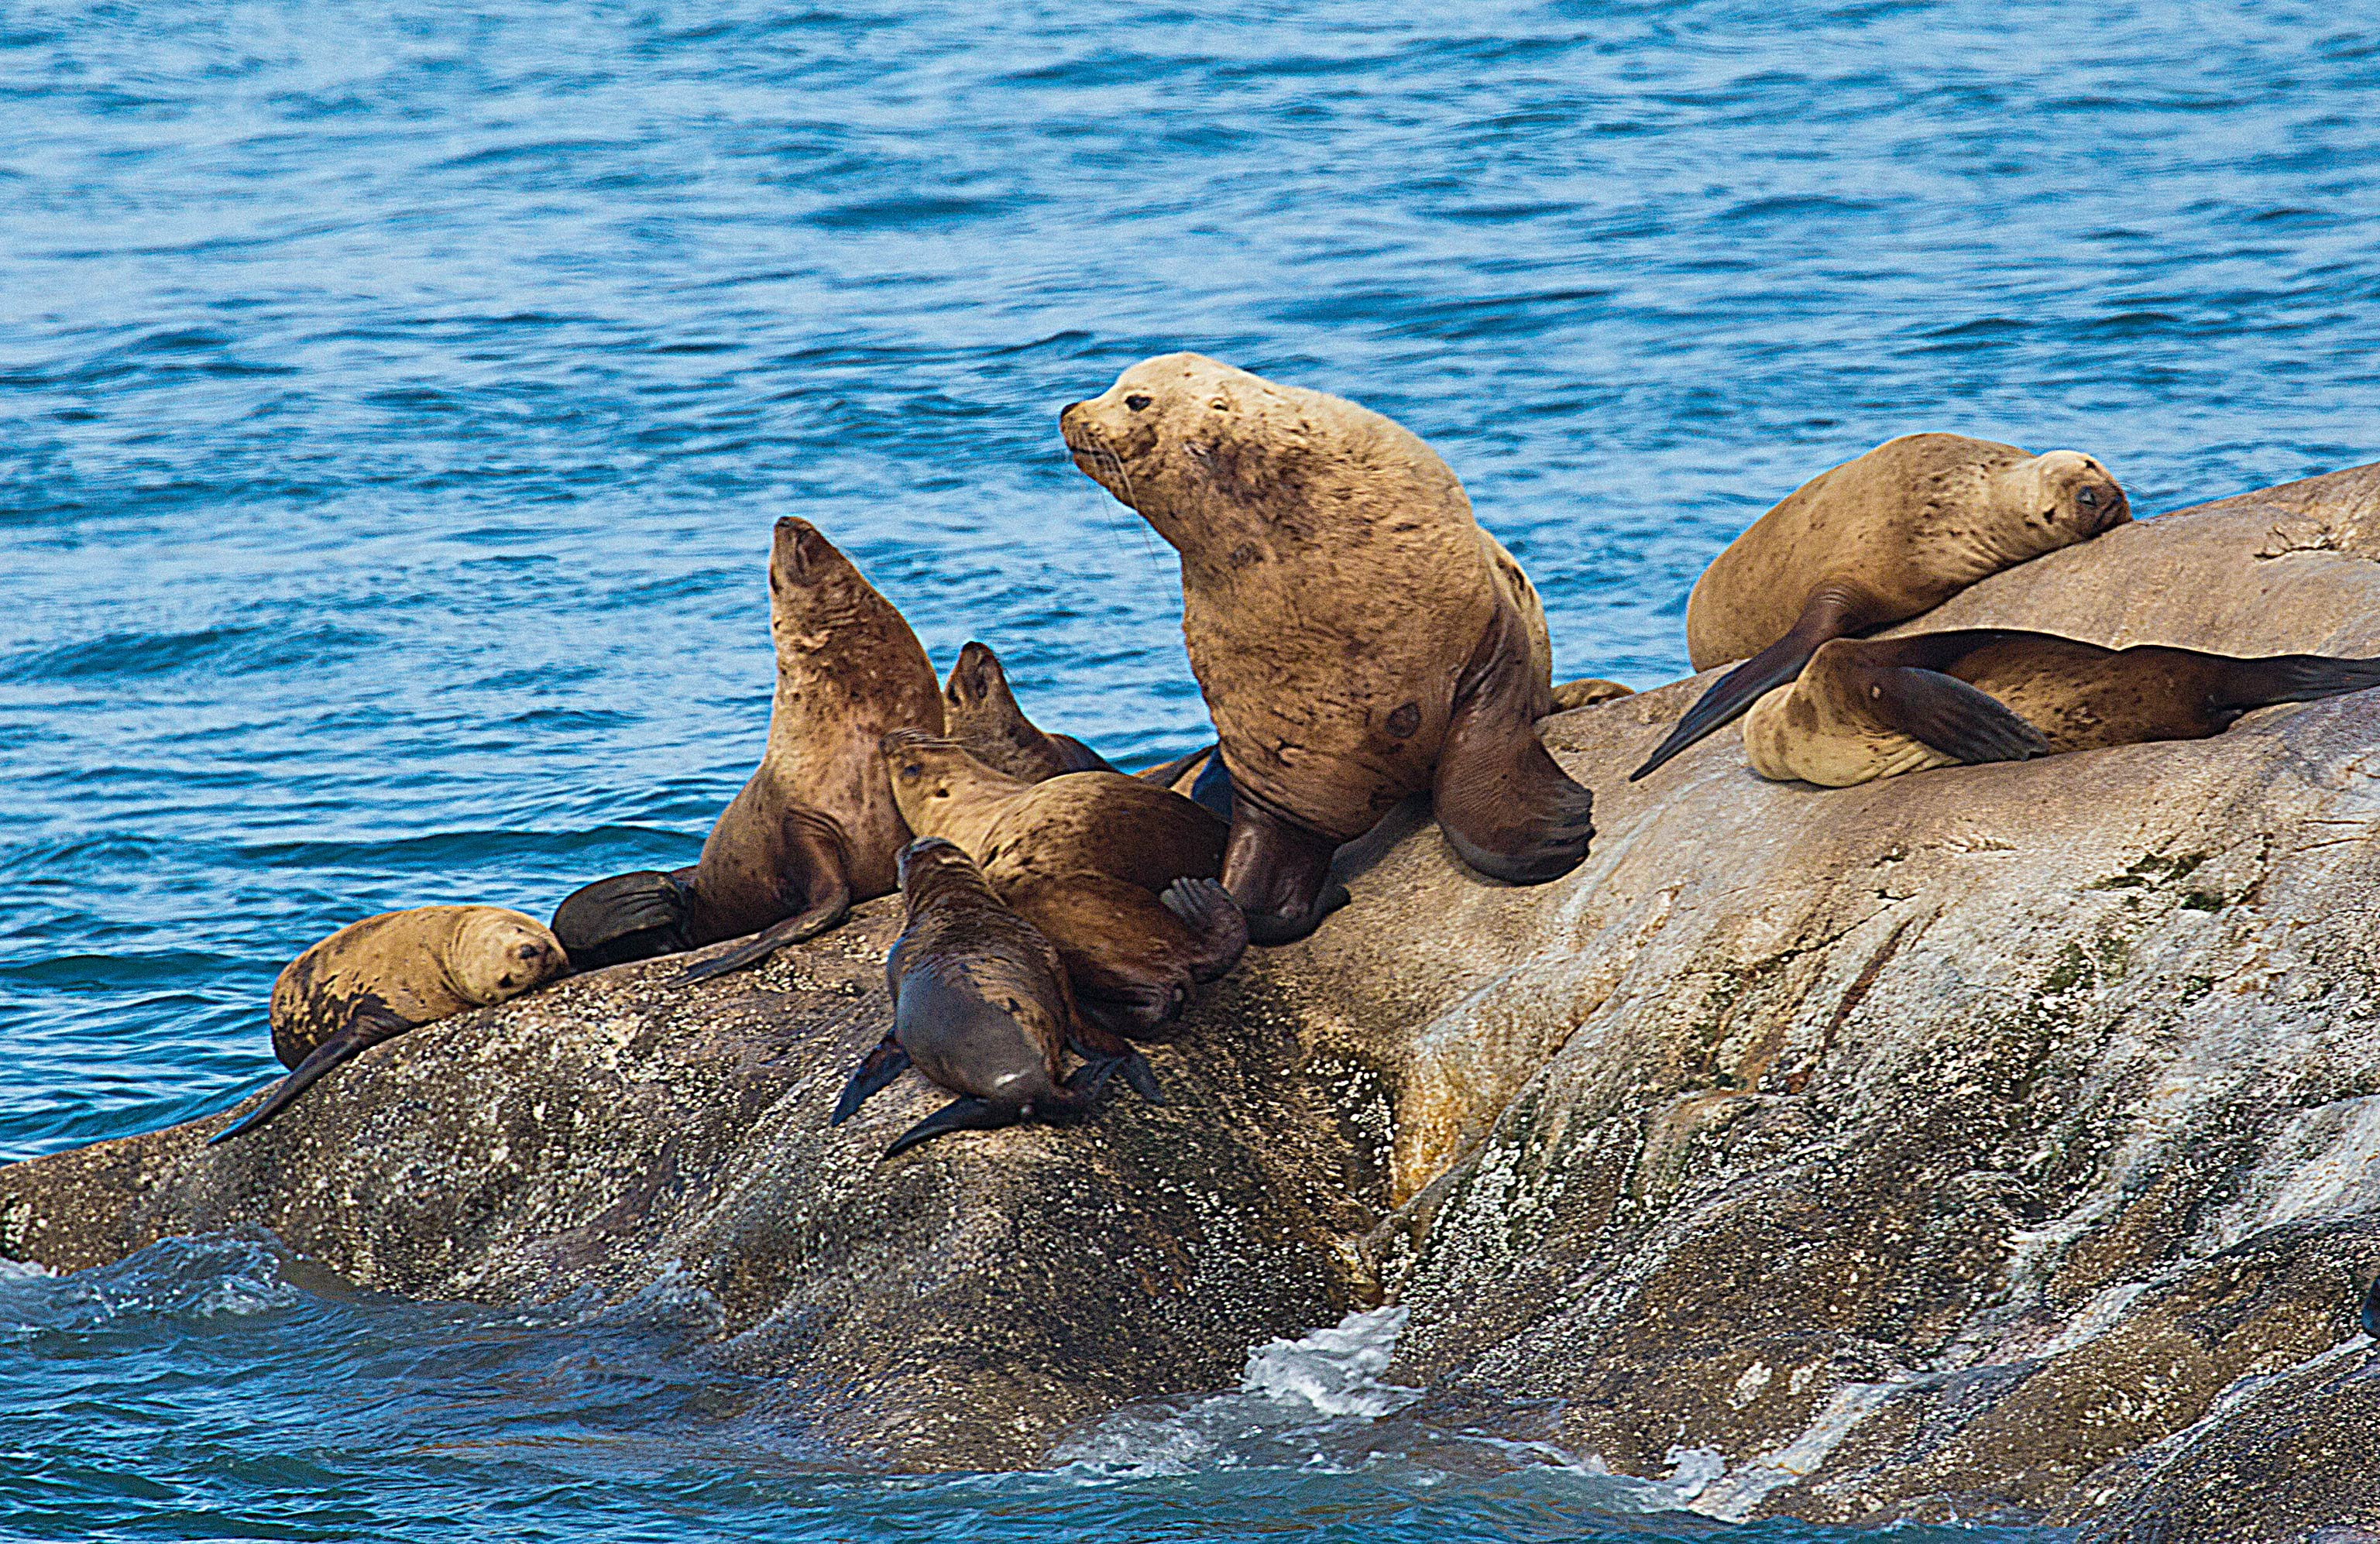 The local Sealions